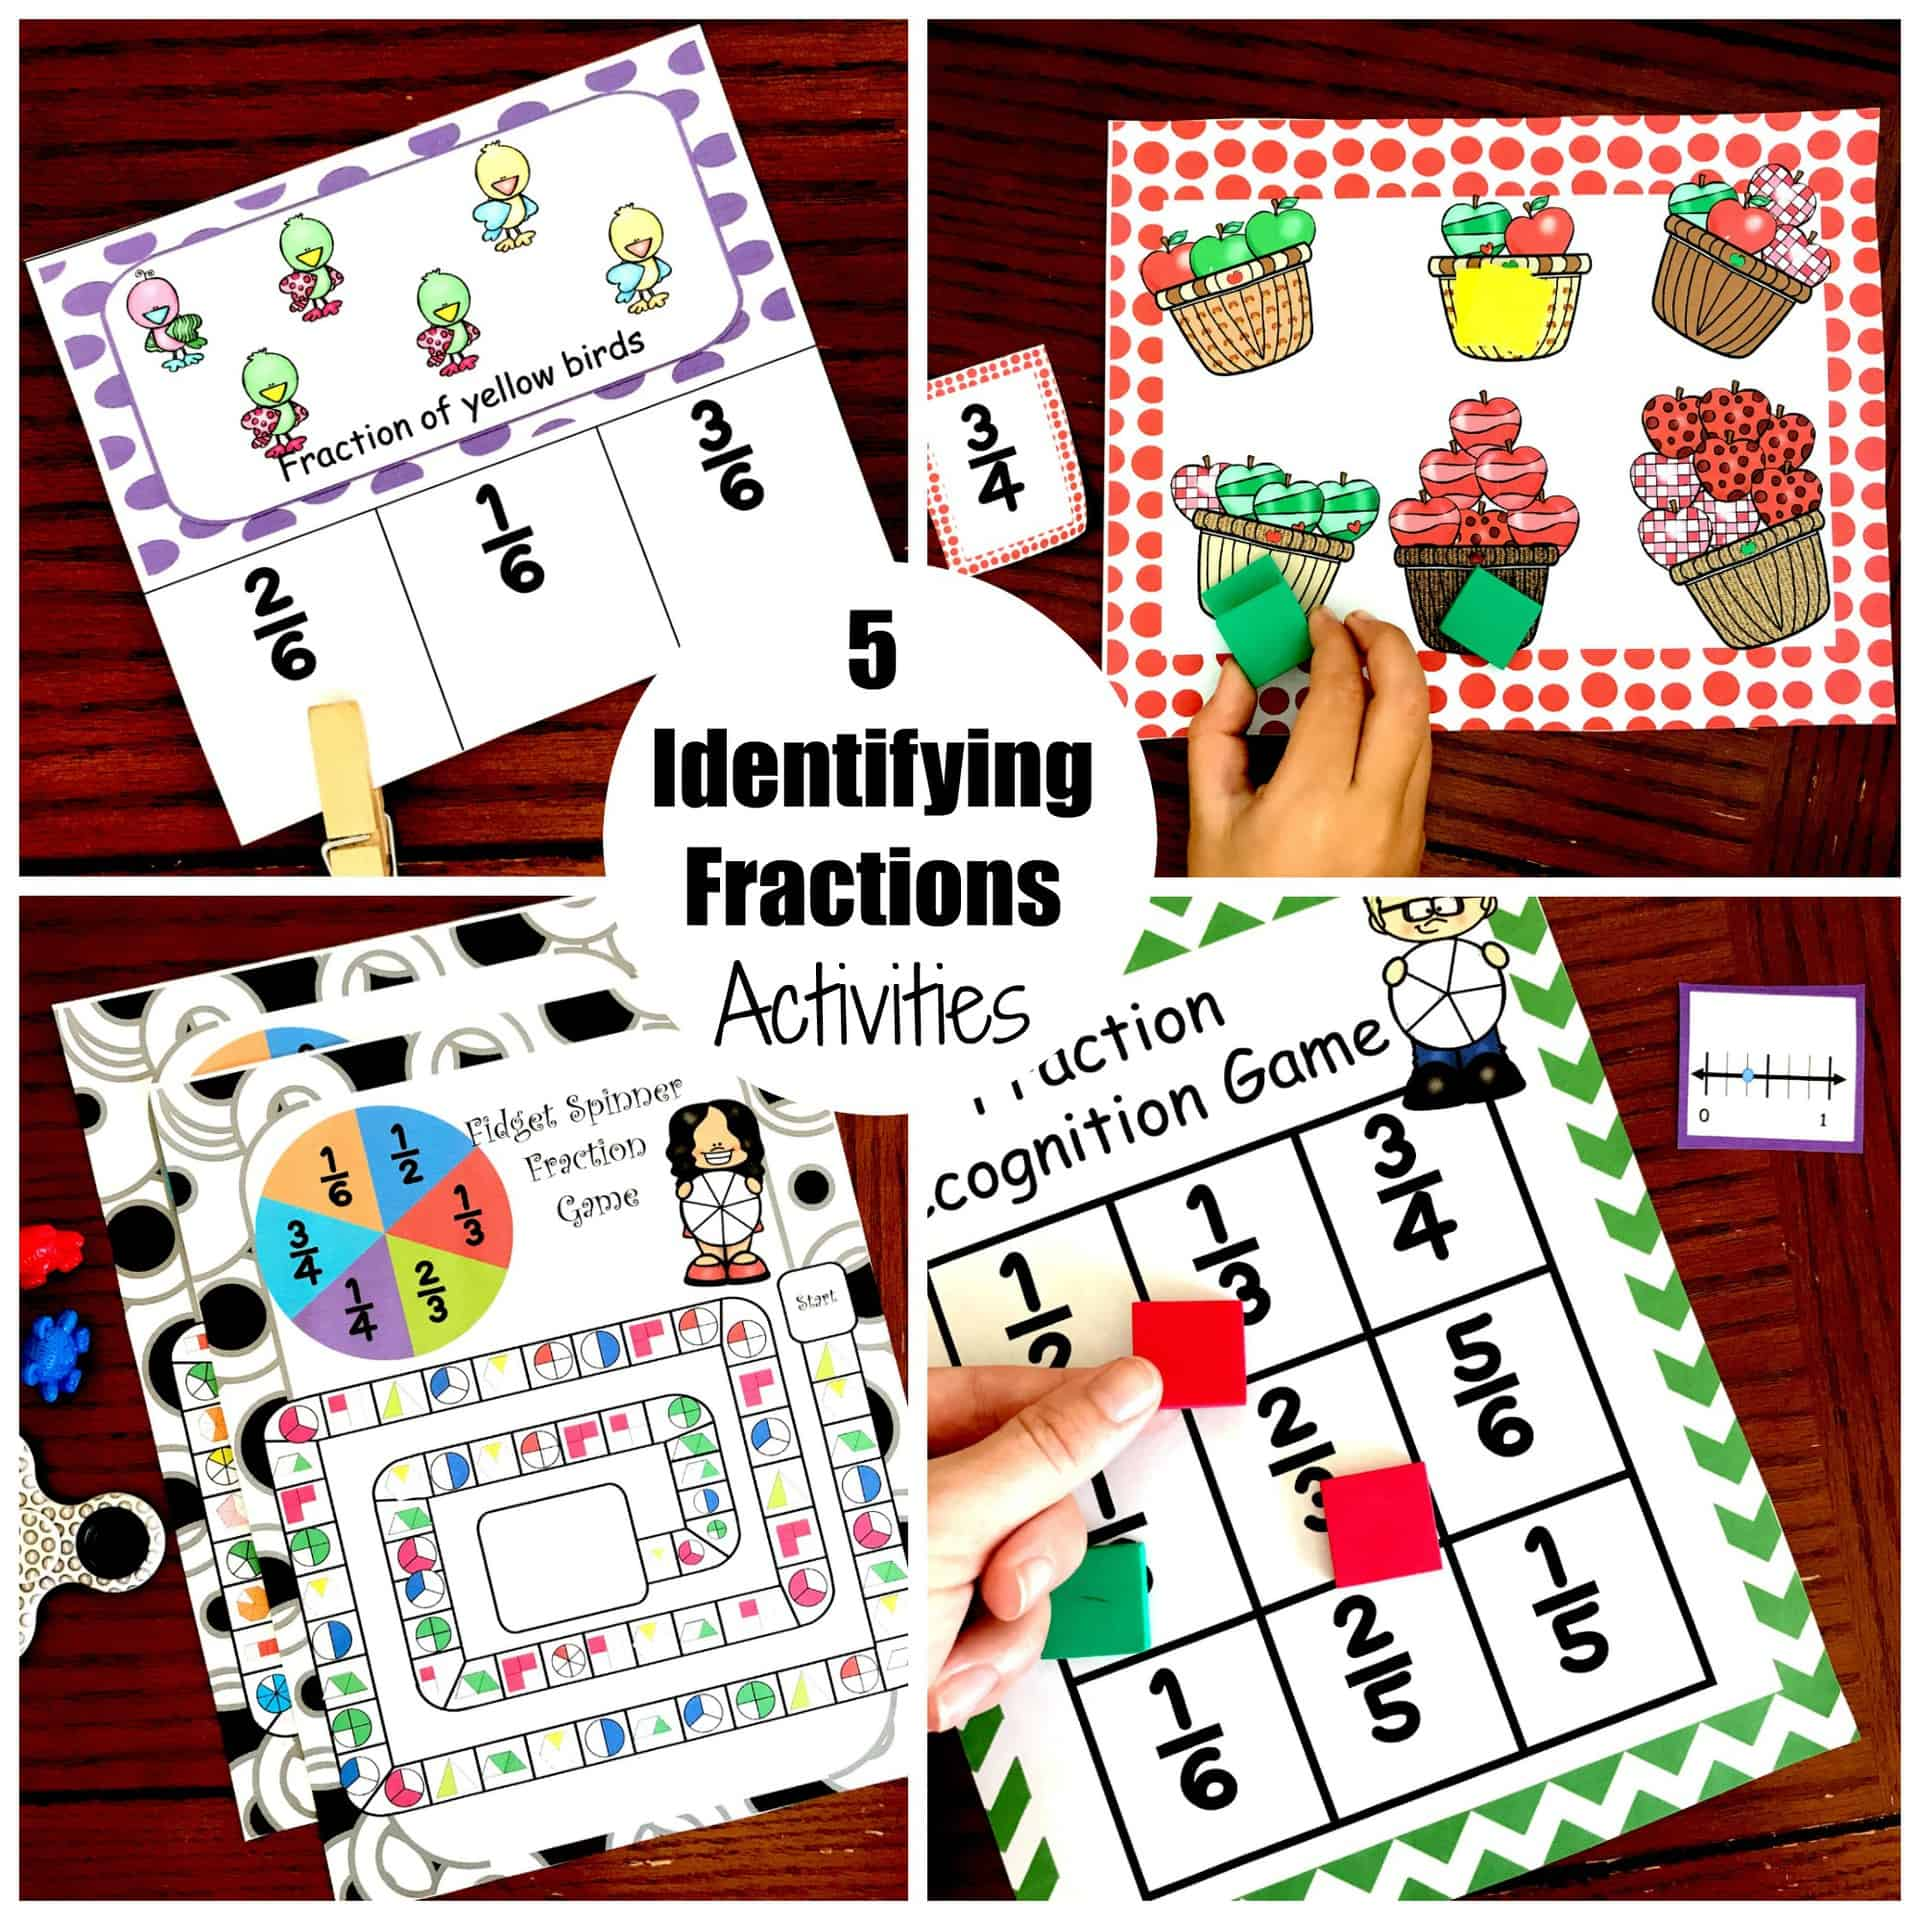 5 Activities To Help Children Learn Fractions Denominator And Numerator